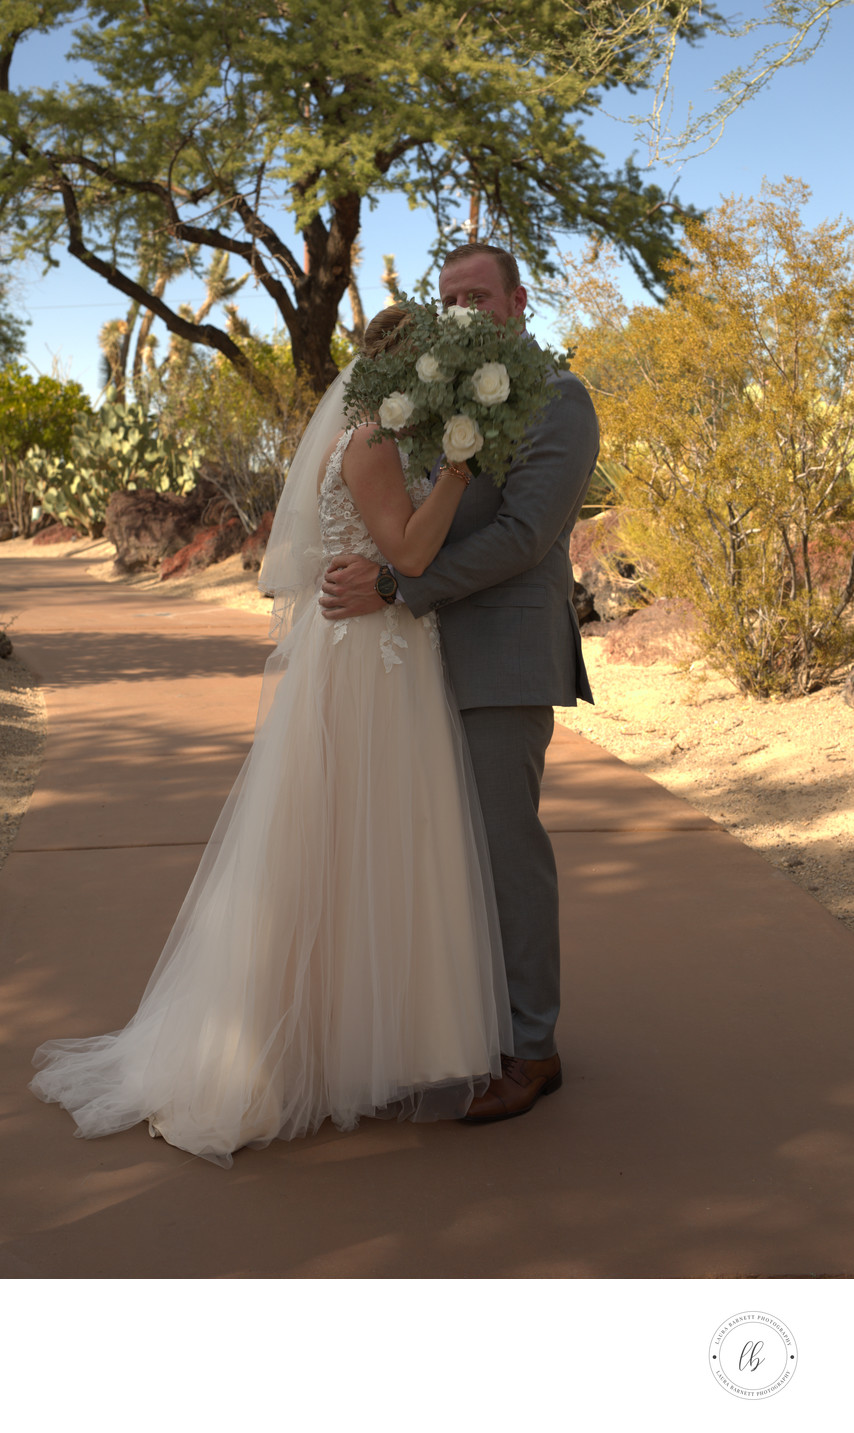 Las Vegas Wedding Photographer - formal bride and groom